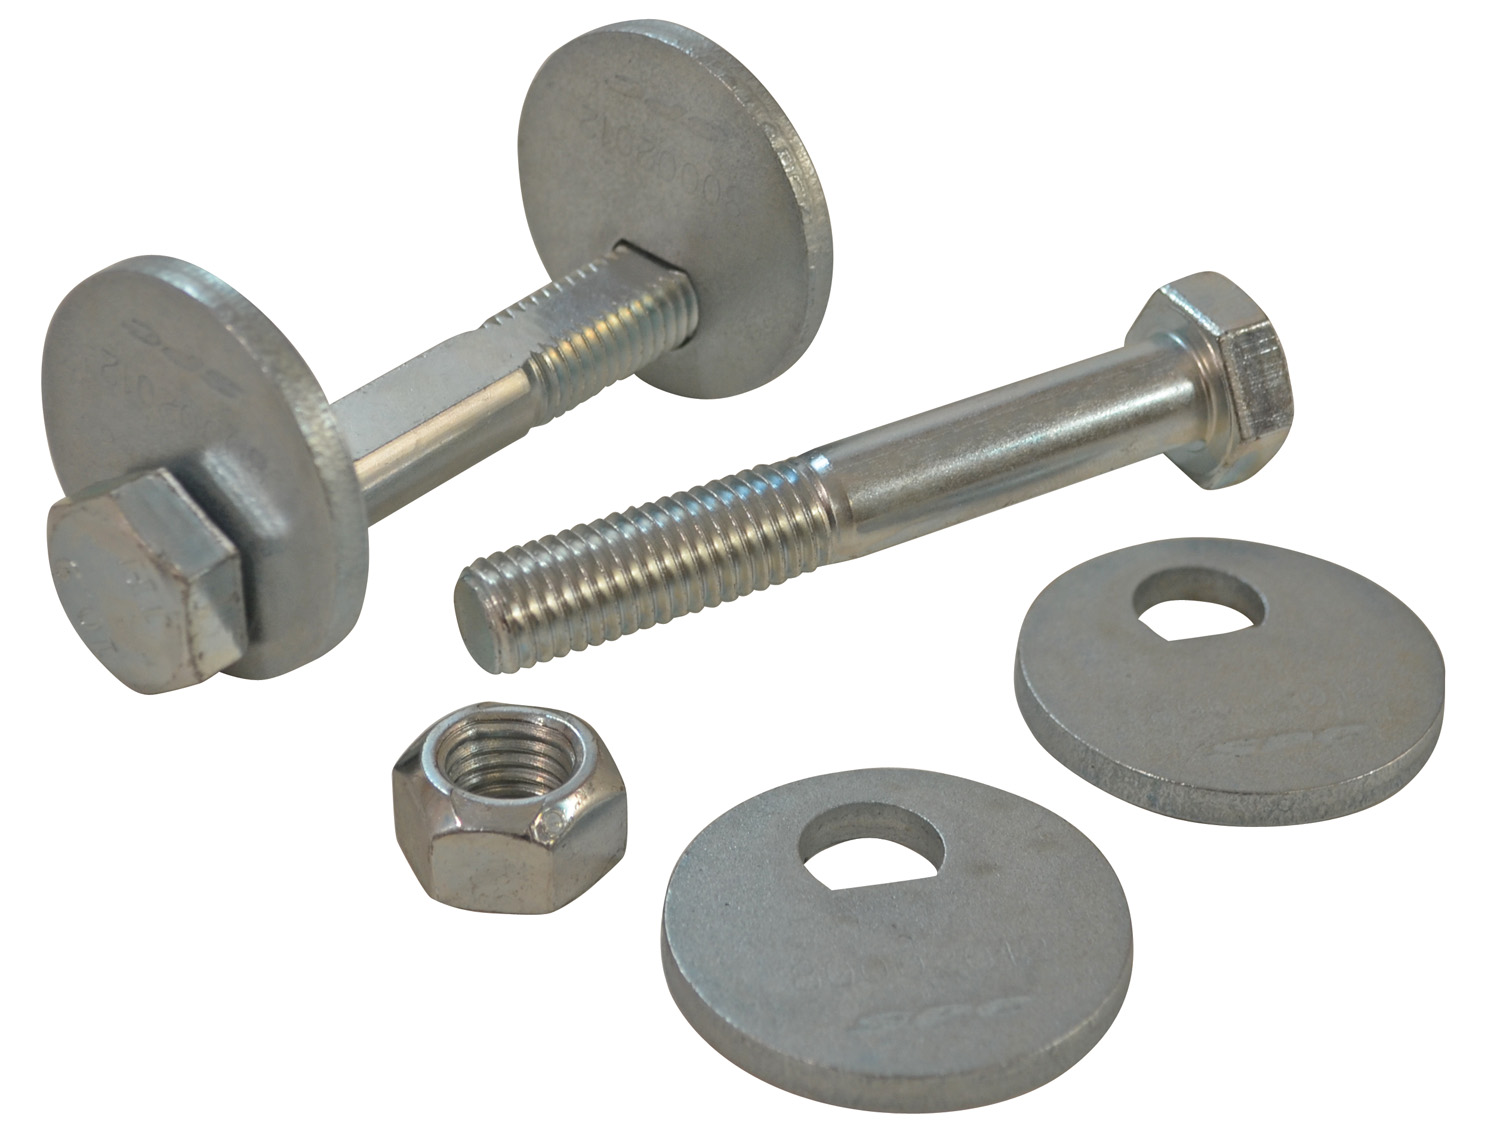 Fat Bob's Garage, Light Racing Part #87520, Nissan Pathfinder Camber Bolt Kit, Full Set 1985-2013 THUMBNAIL